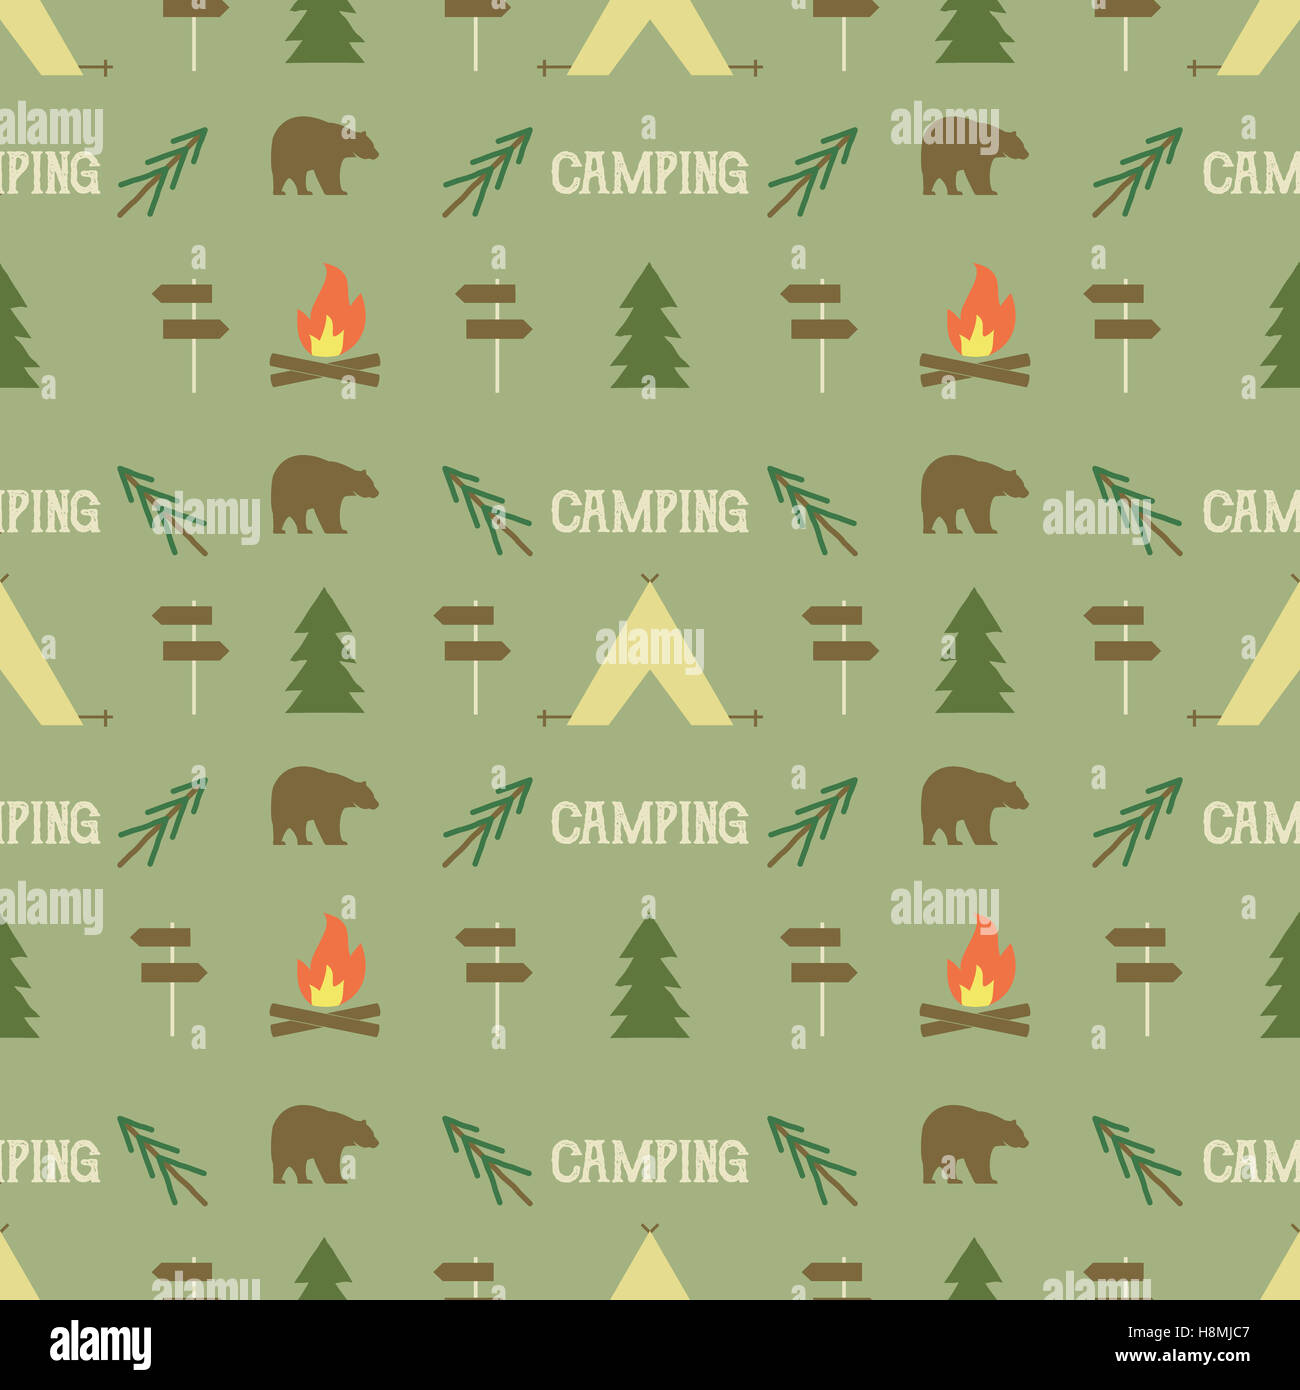 Camping Elements Pattern Seamless Wallpaper Design Equipment For